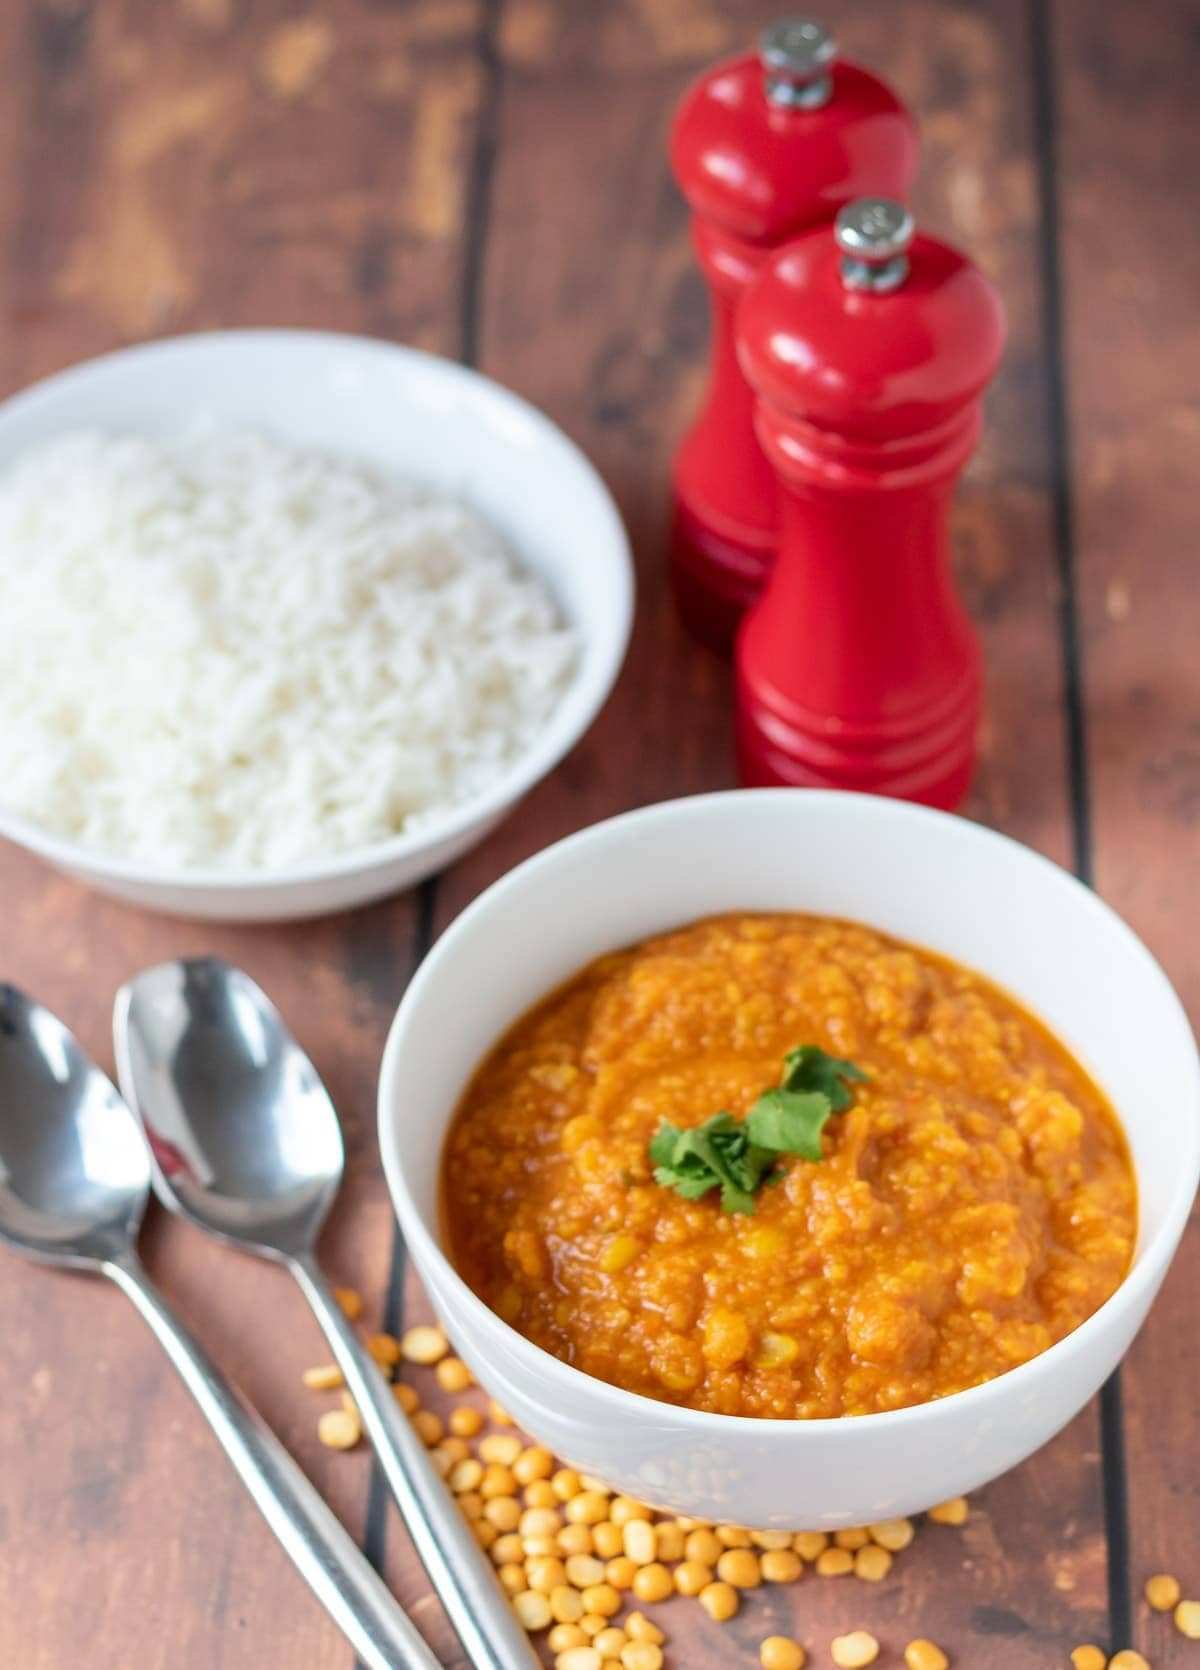 A bowl of yellow lentil dahl garnished with coriander at the front. Serving spoons to the left, a bowl of rice and salt and pepper cellars in the background.